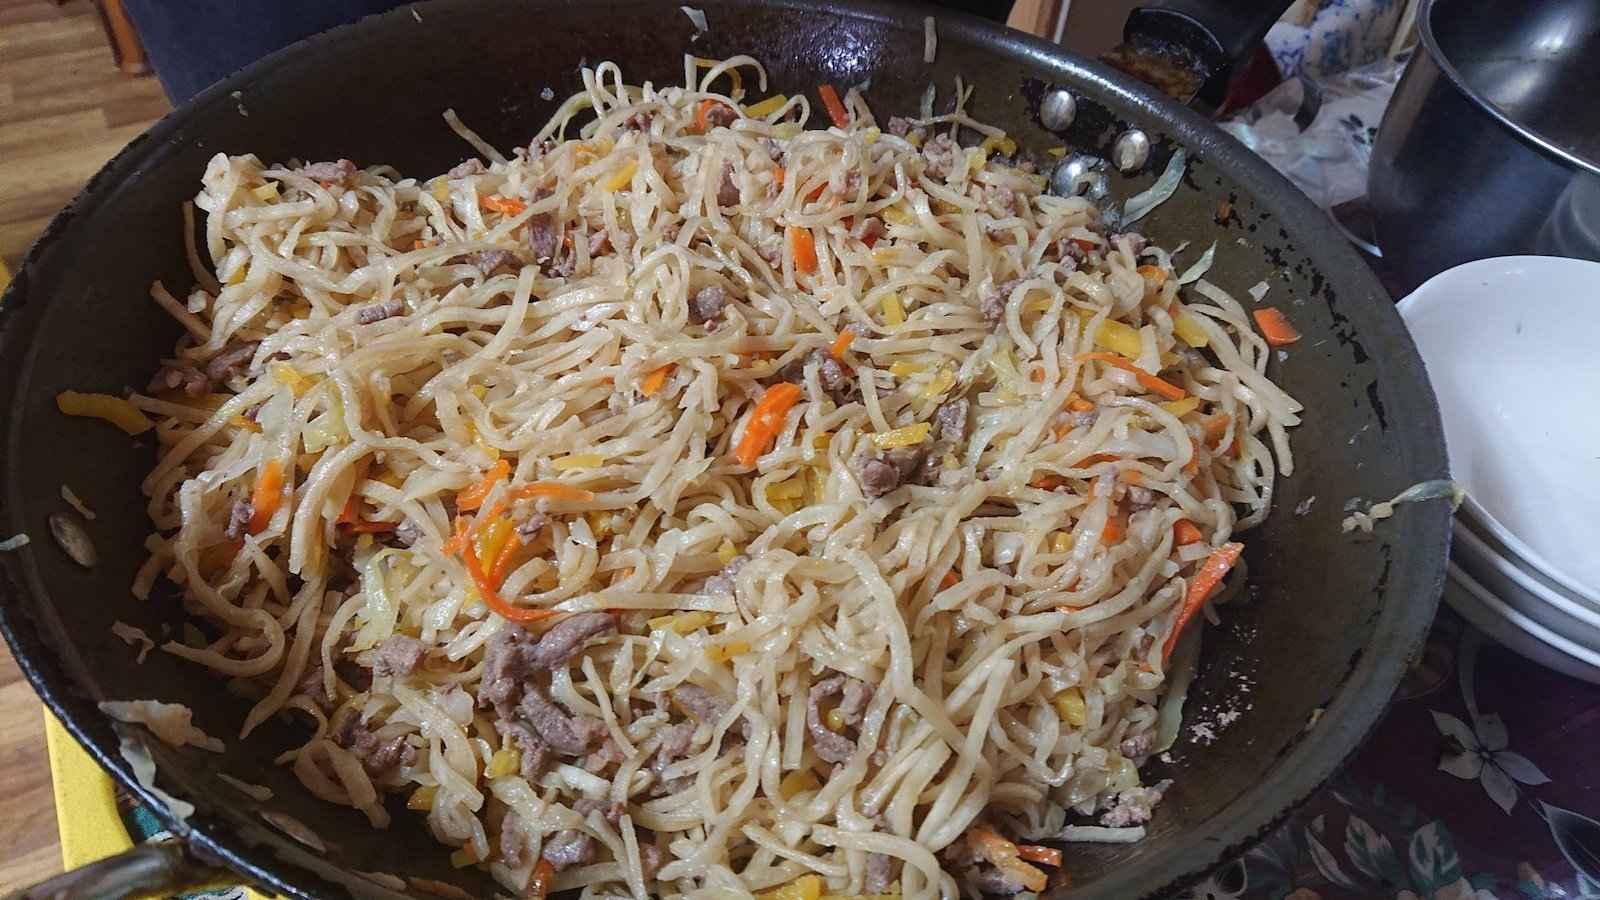 Tsuivan is a delicious traditional food of Mongolia we loved eating during our travels